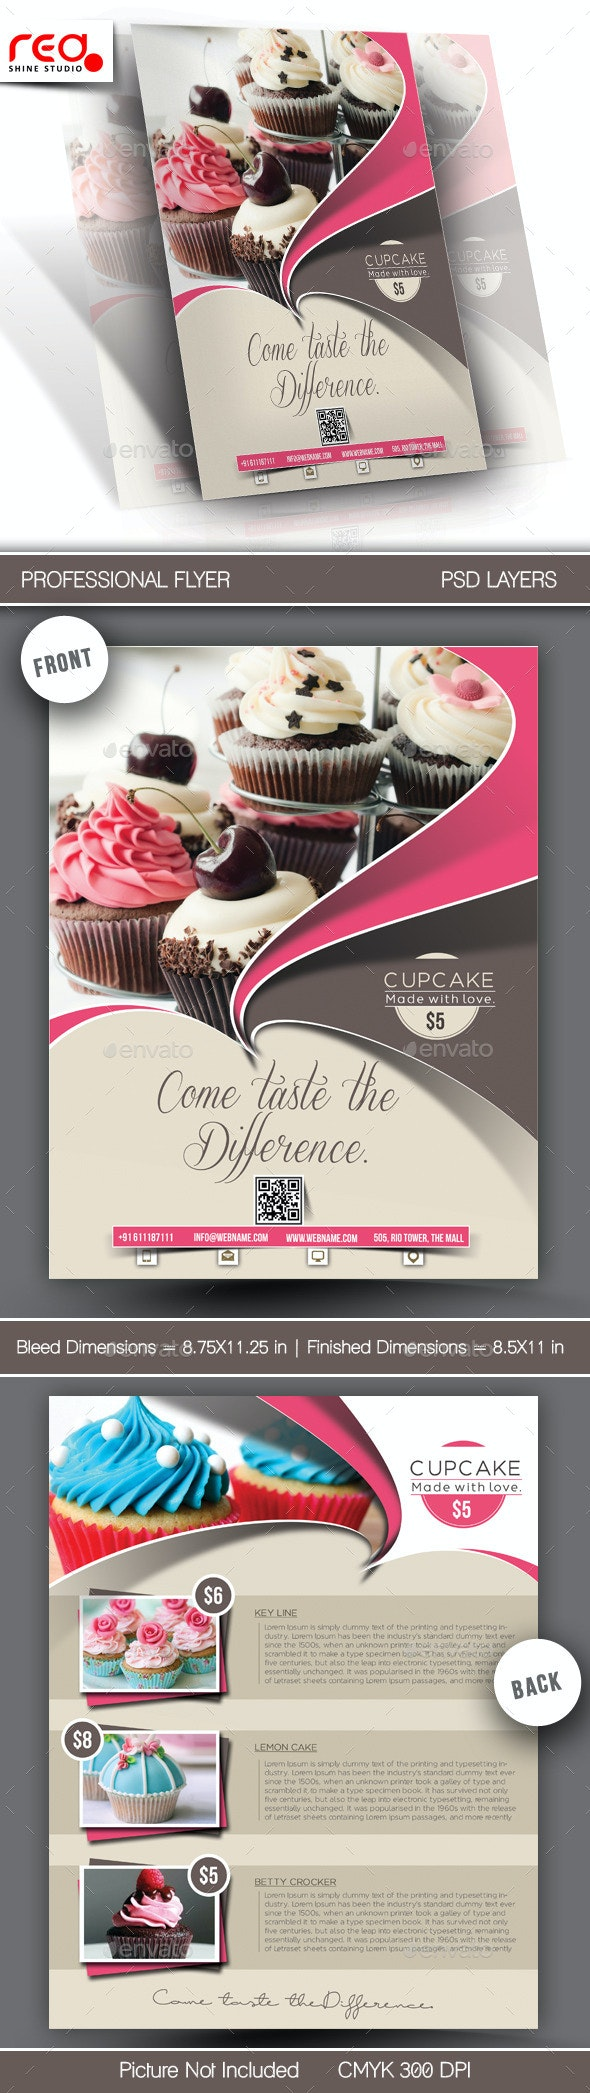 Cupcake Flyer & Poster Template - Restaurant Flyers